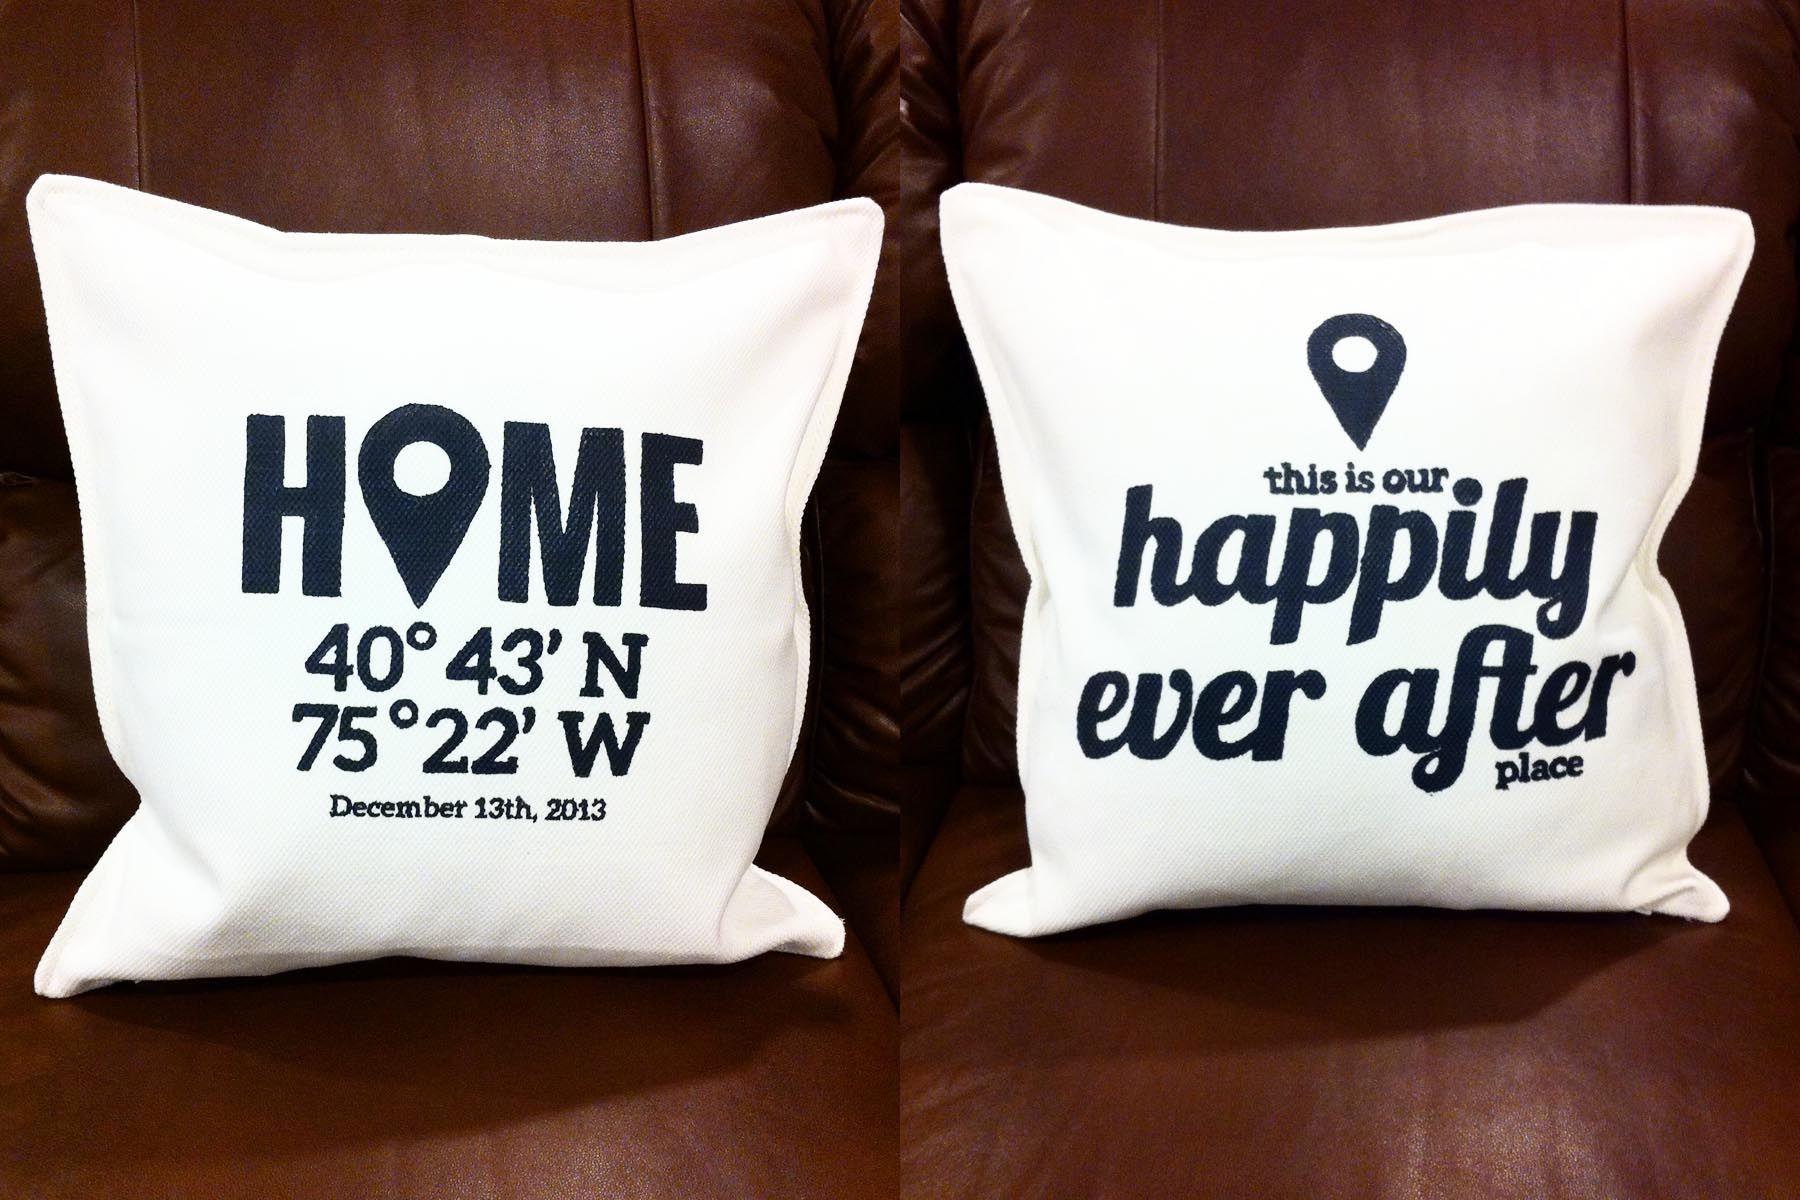 Housewarming Gift For Sister Housewarming Pillows By Pamlee81 At Studio Calico Love